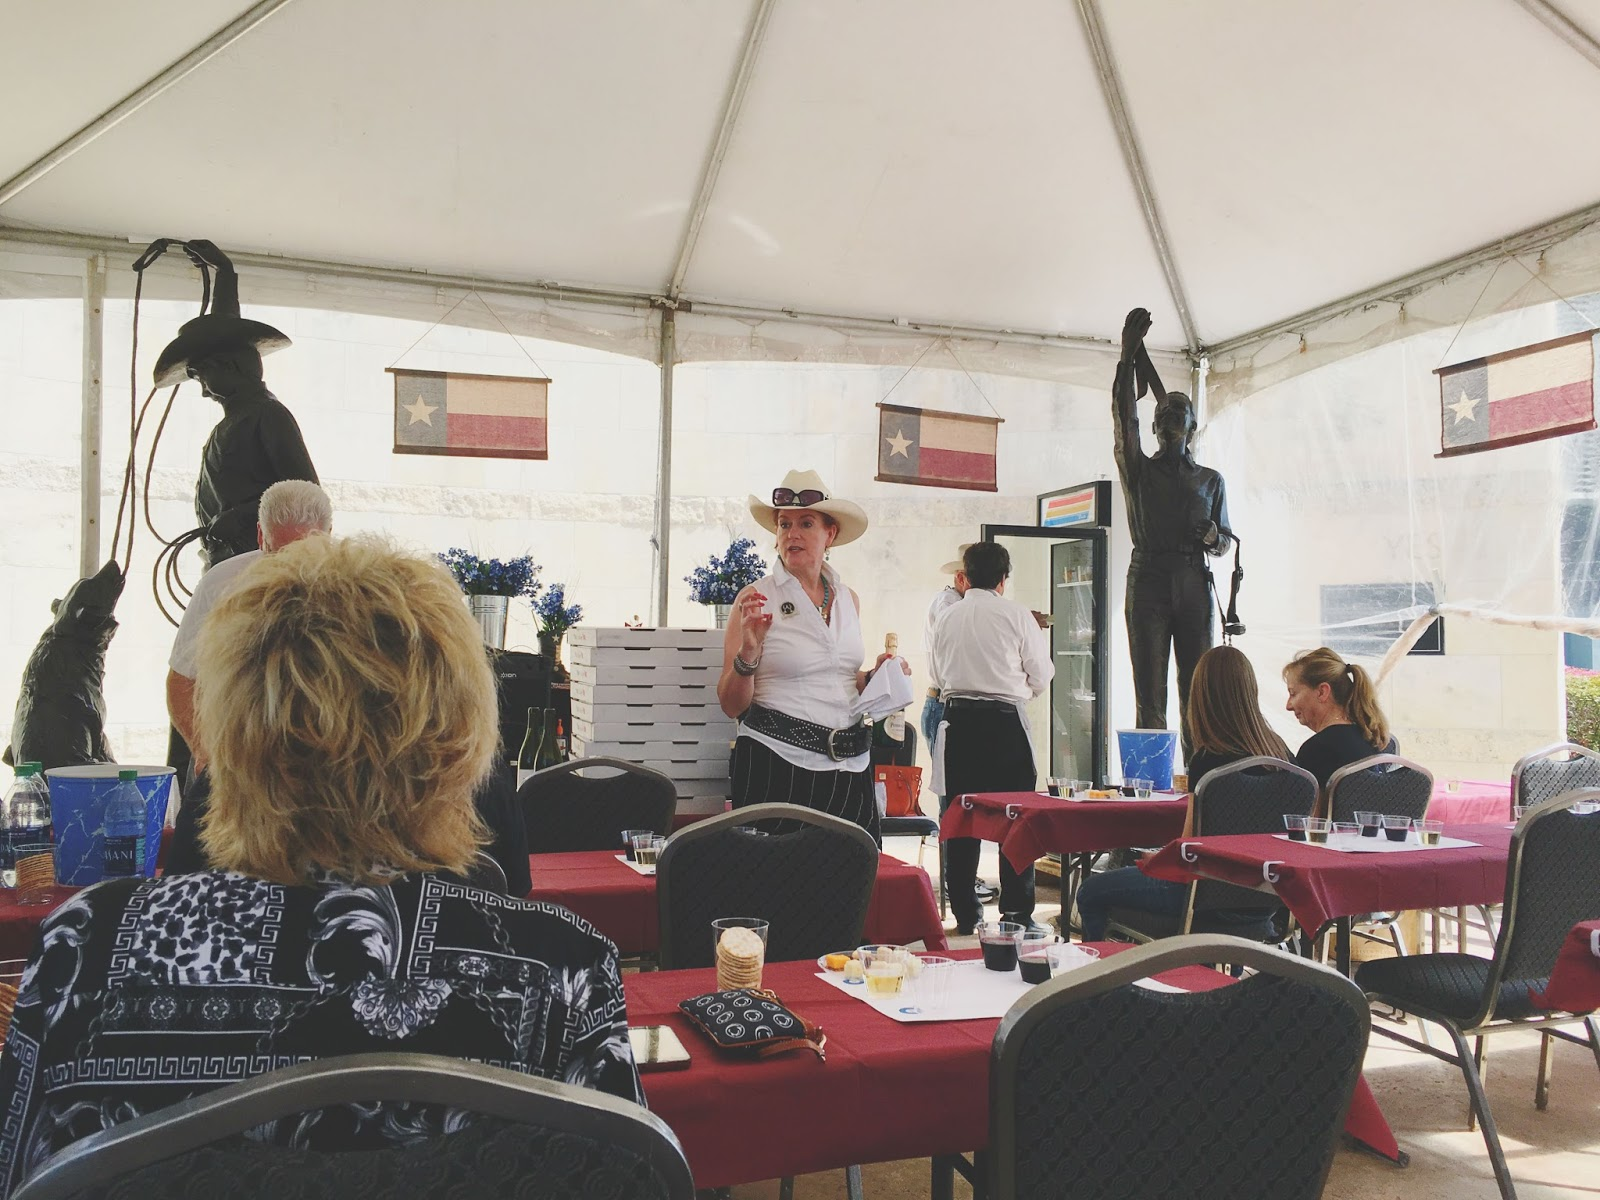 2016 Houston Livestock Show and Rodeo Champion Wine Garden wine and pizza seminar